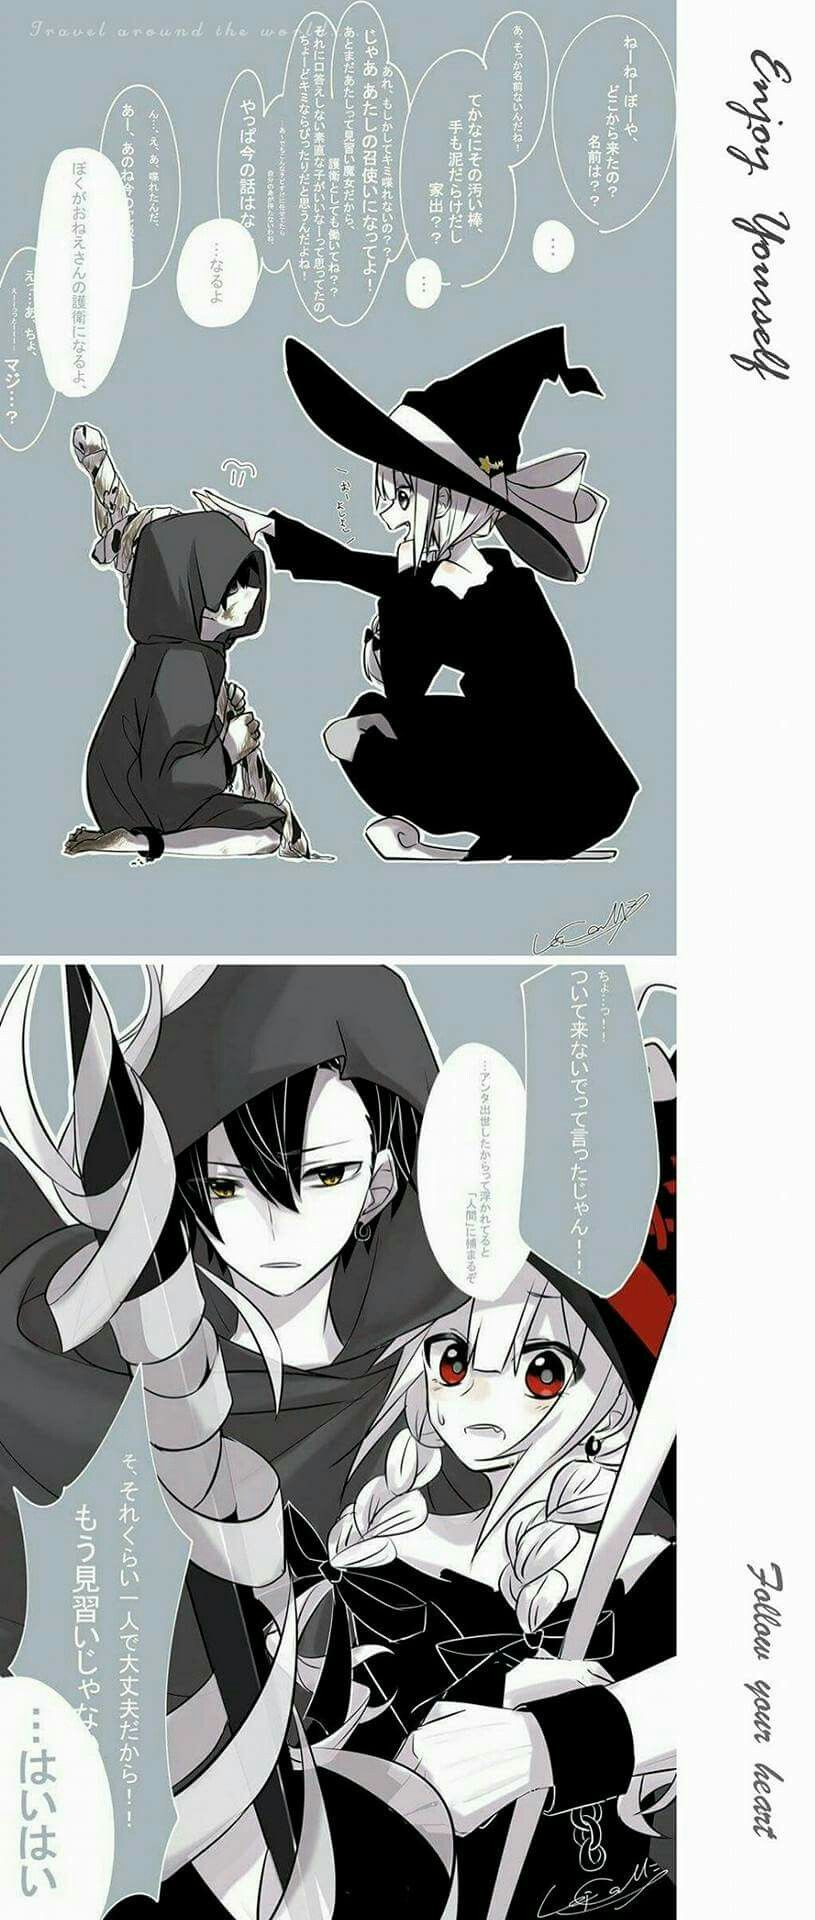 Anime boy black hair demon now legal  witch  pinterest  witches anime and manga